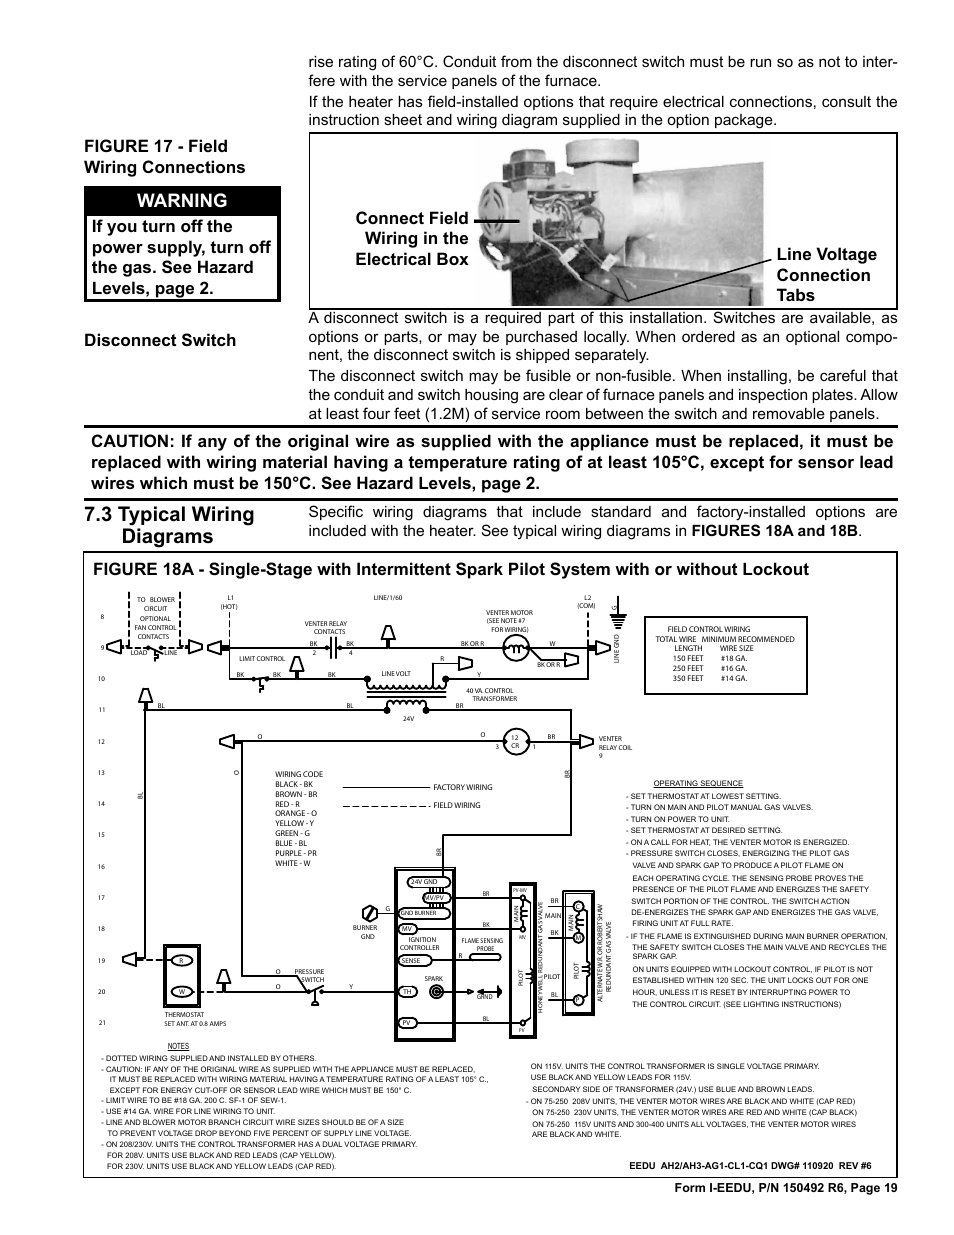 medium resolution of 3 typical wiring diagrams warning reznor eedu unit installation manual user manual page 19 32